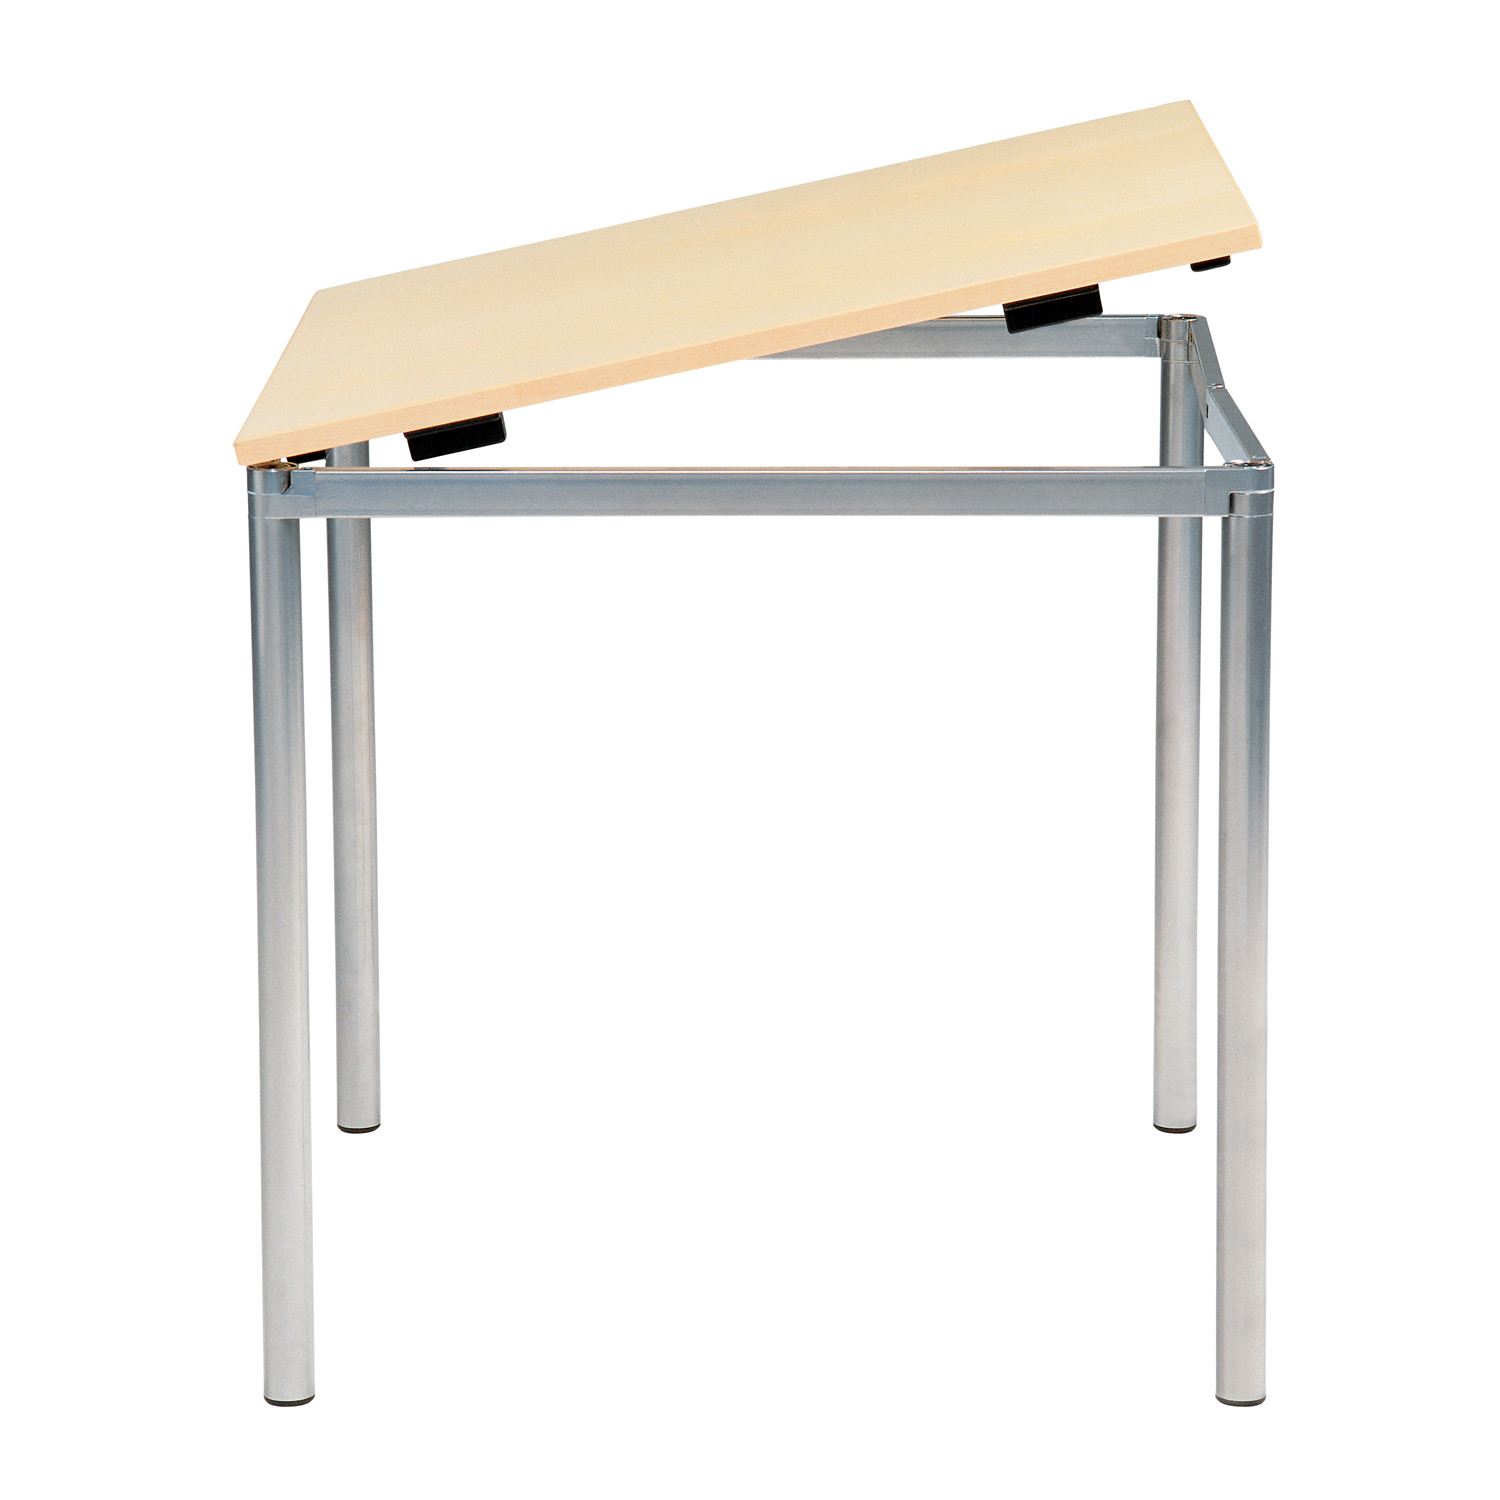 Simpla Two-Piece Table with Lift-Off Top